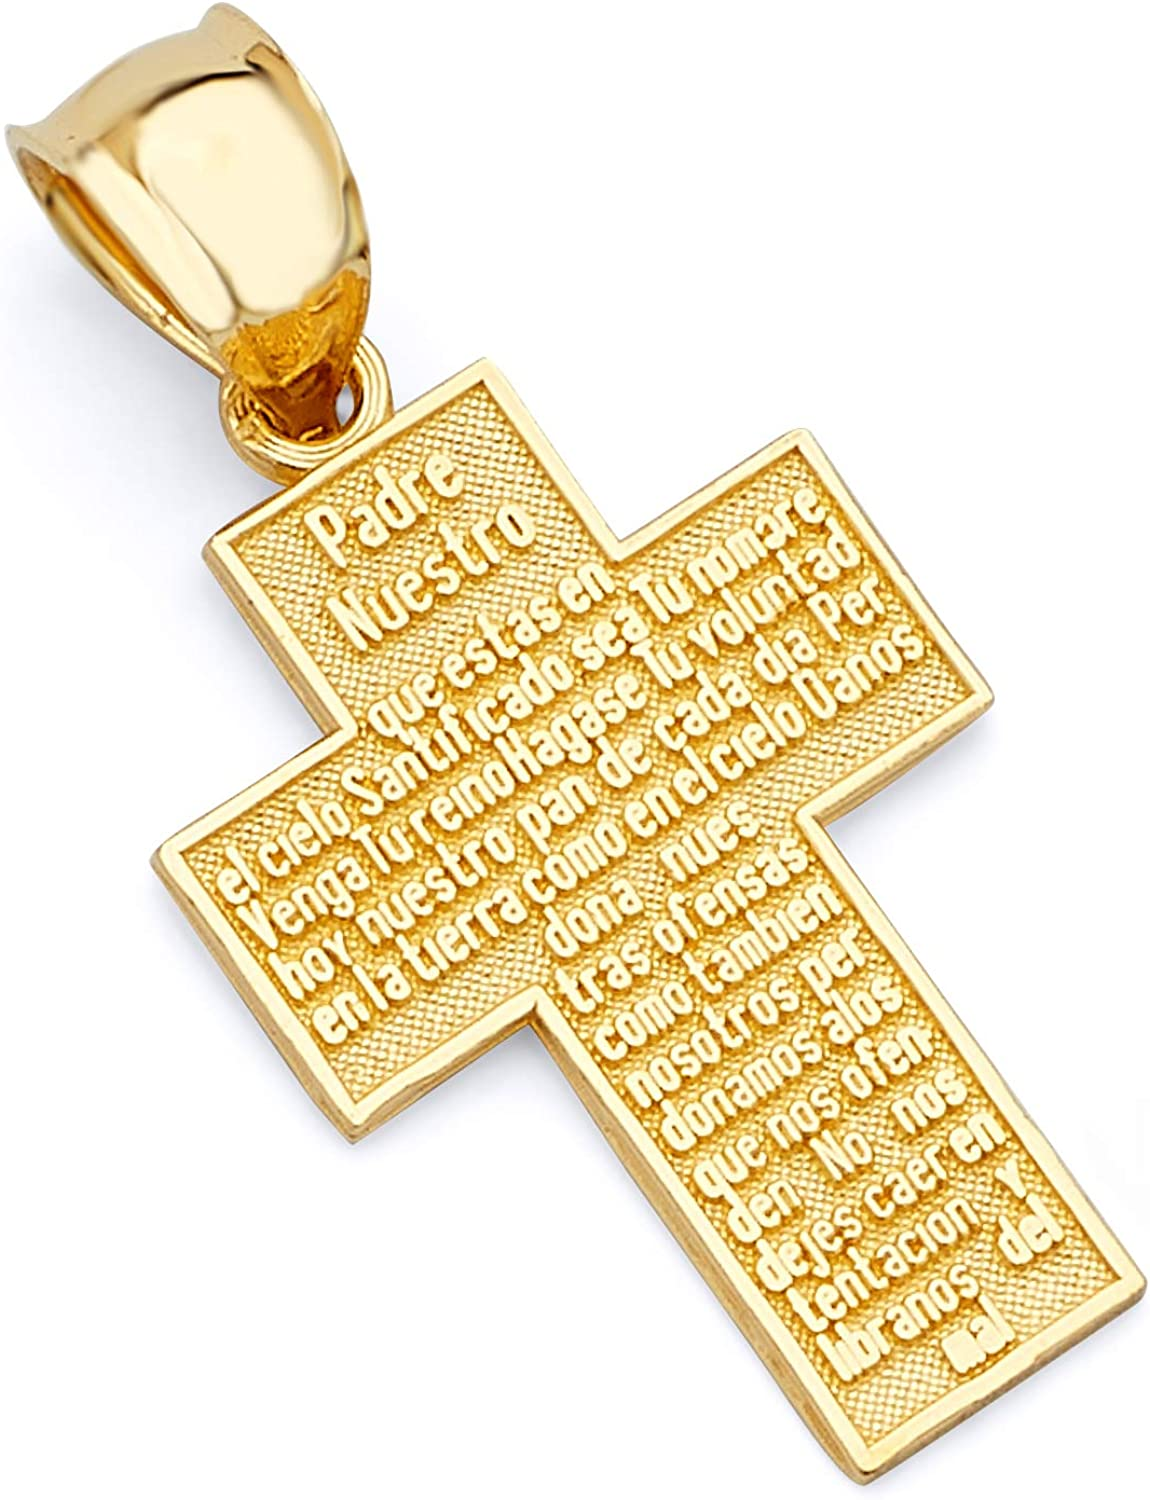 14k REAL Yellow Gold Religious Padre Nuestro Cross Charm Pendant